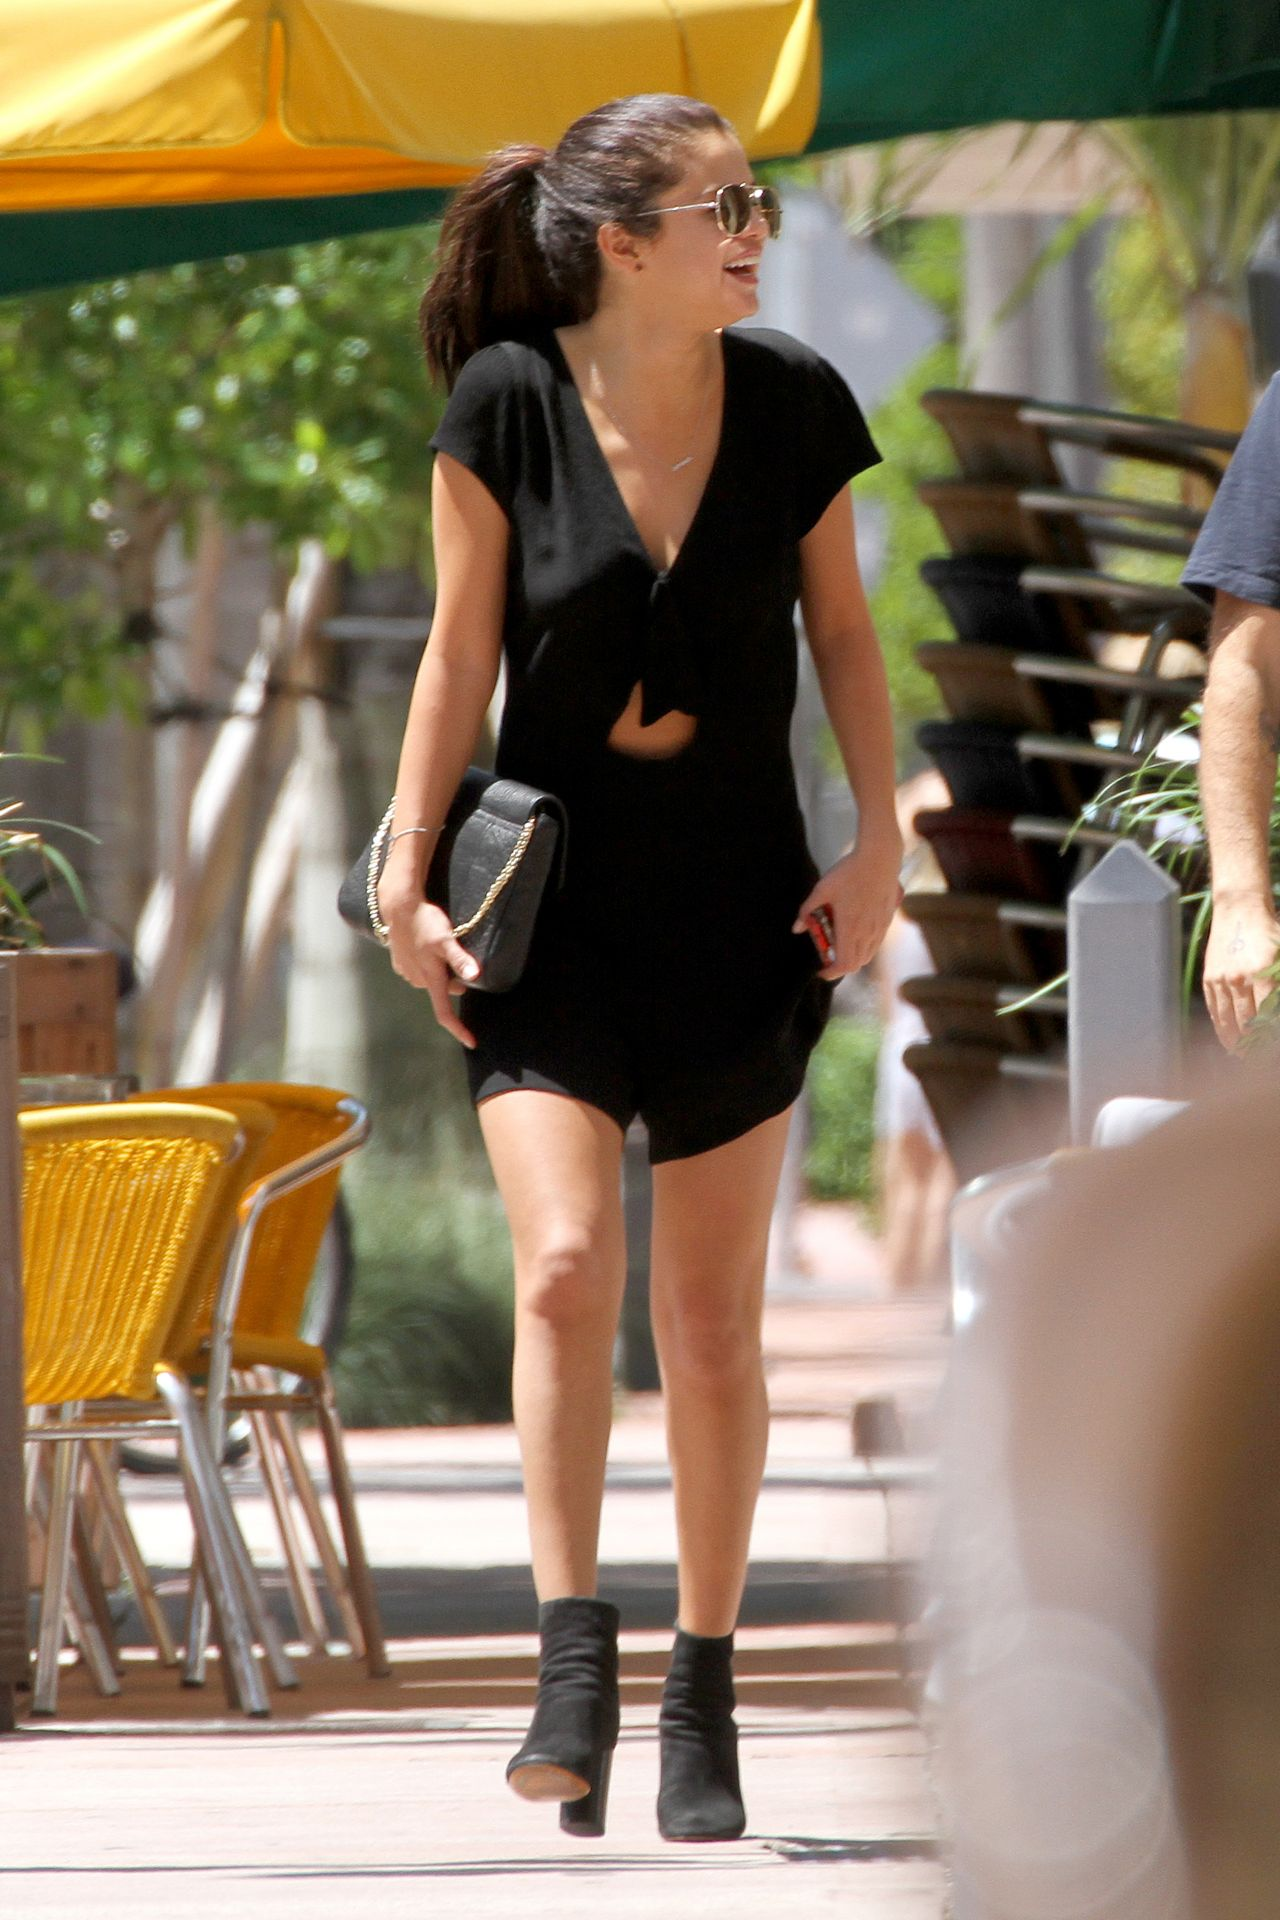 Beautiful Hairstyles Selena Gomez Takes Her Legs Out In Miami - July 2014